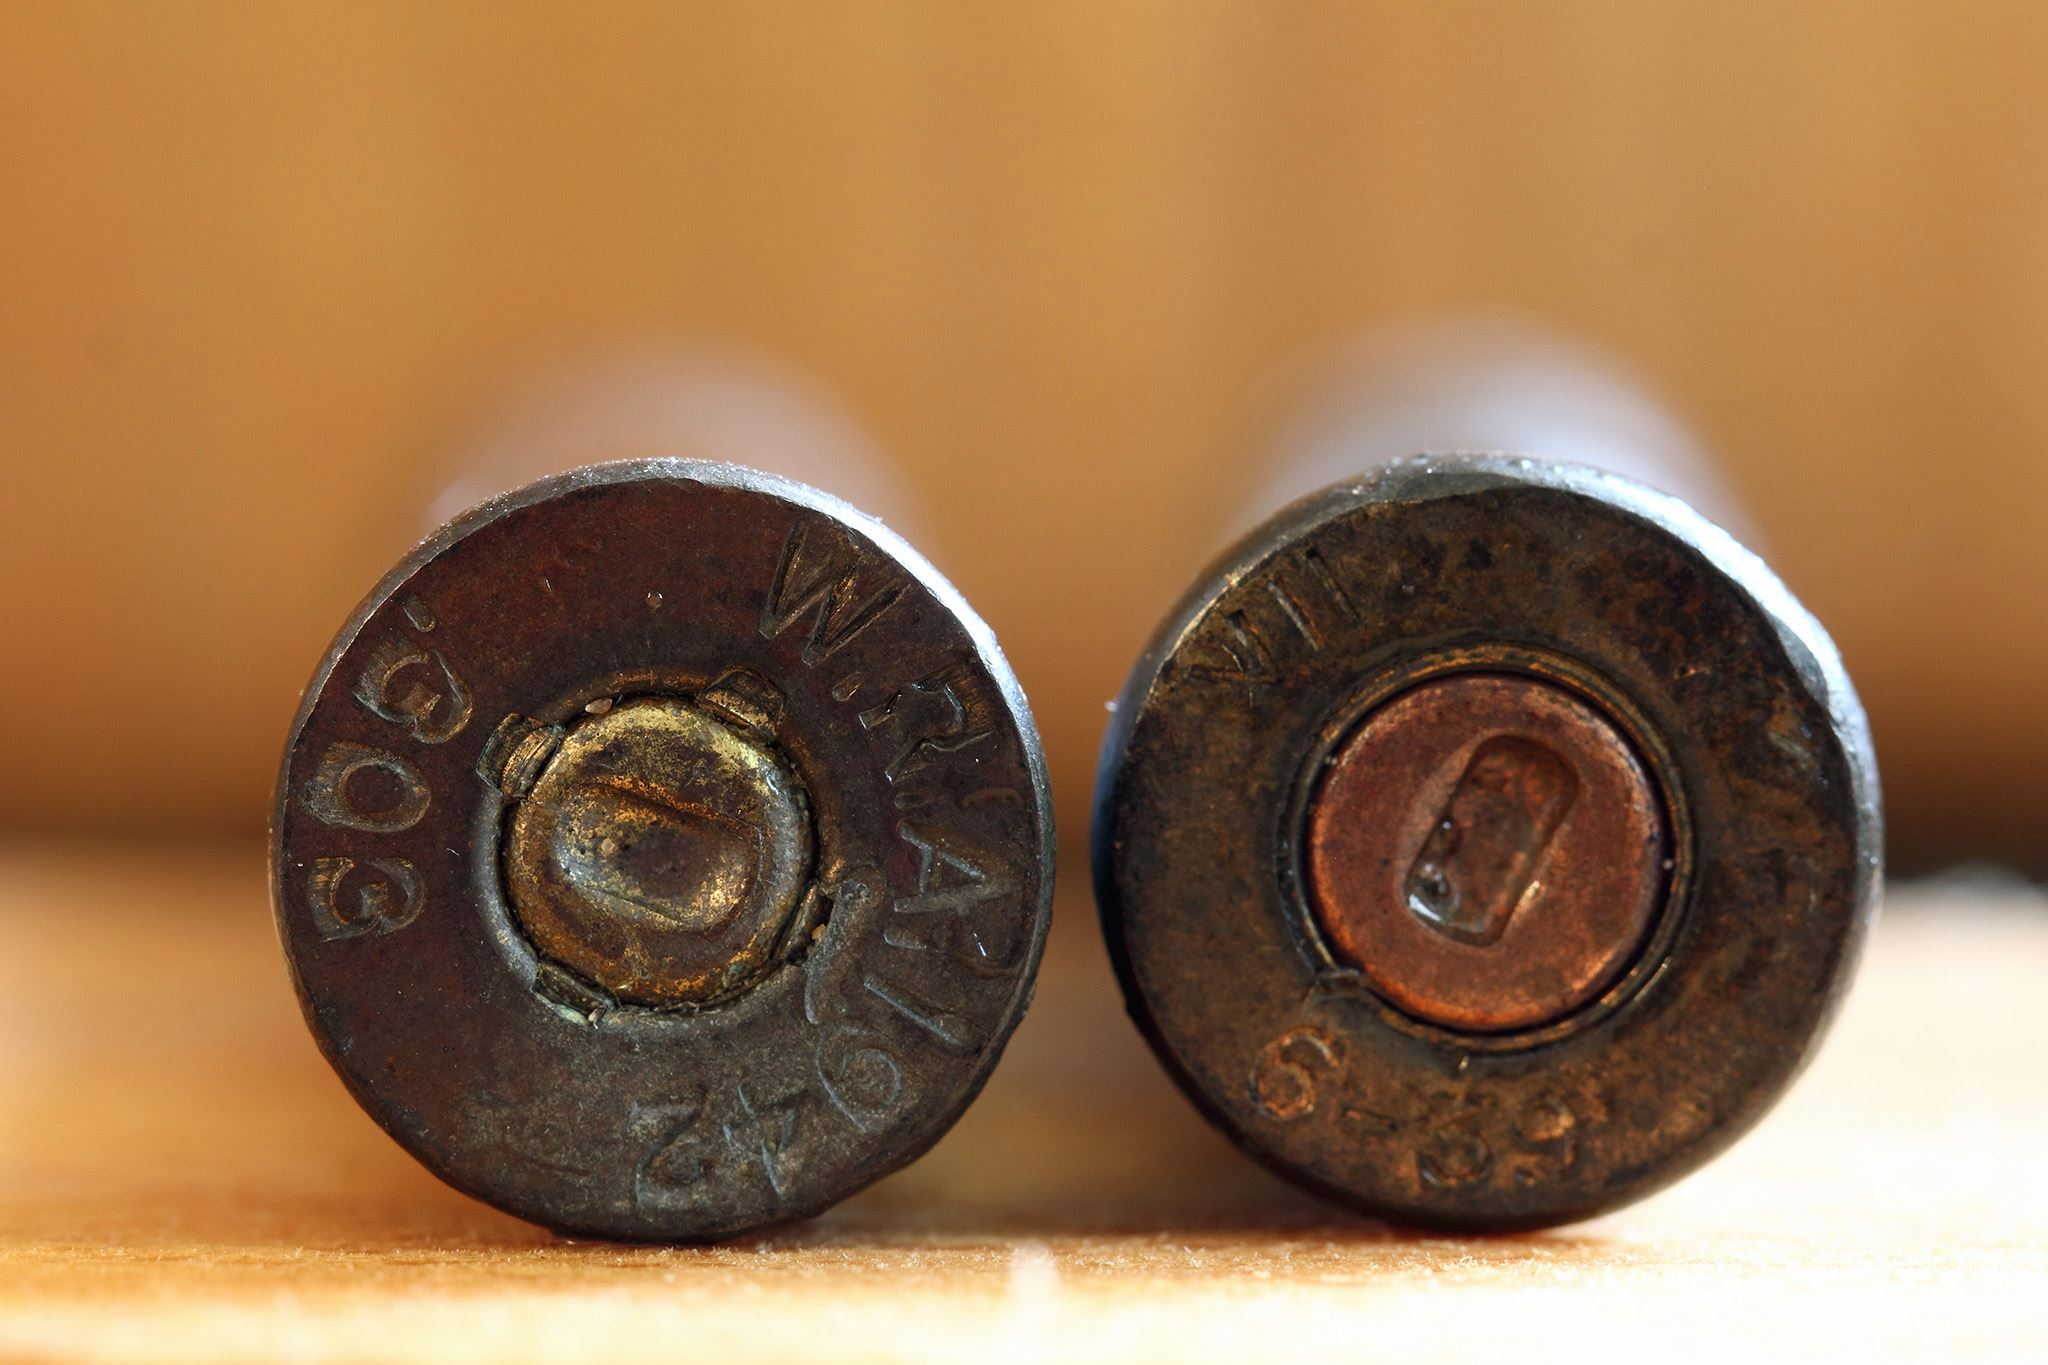 The bullets which were discovered.